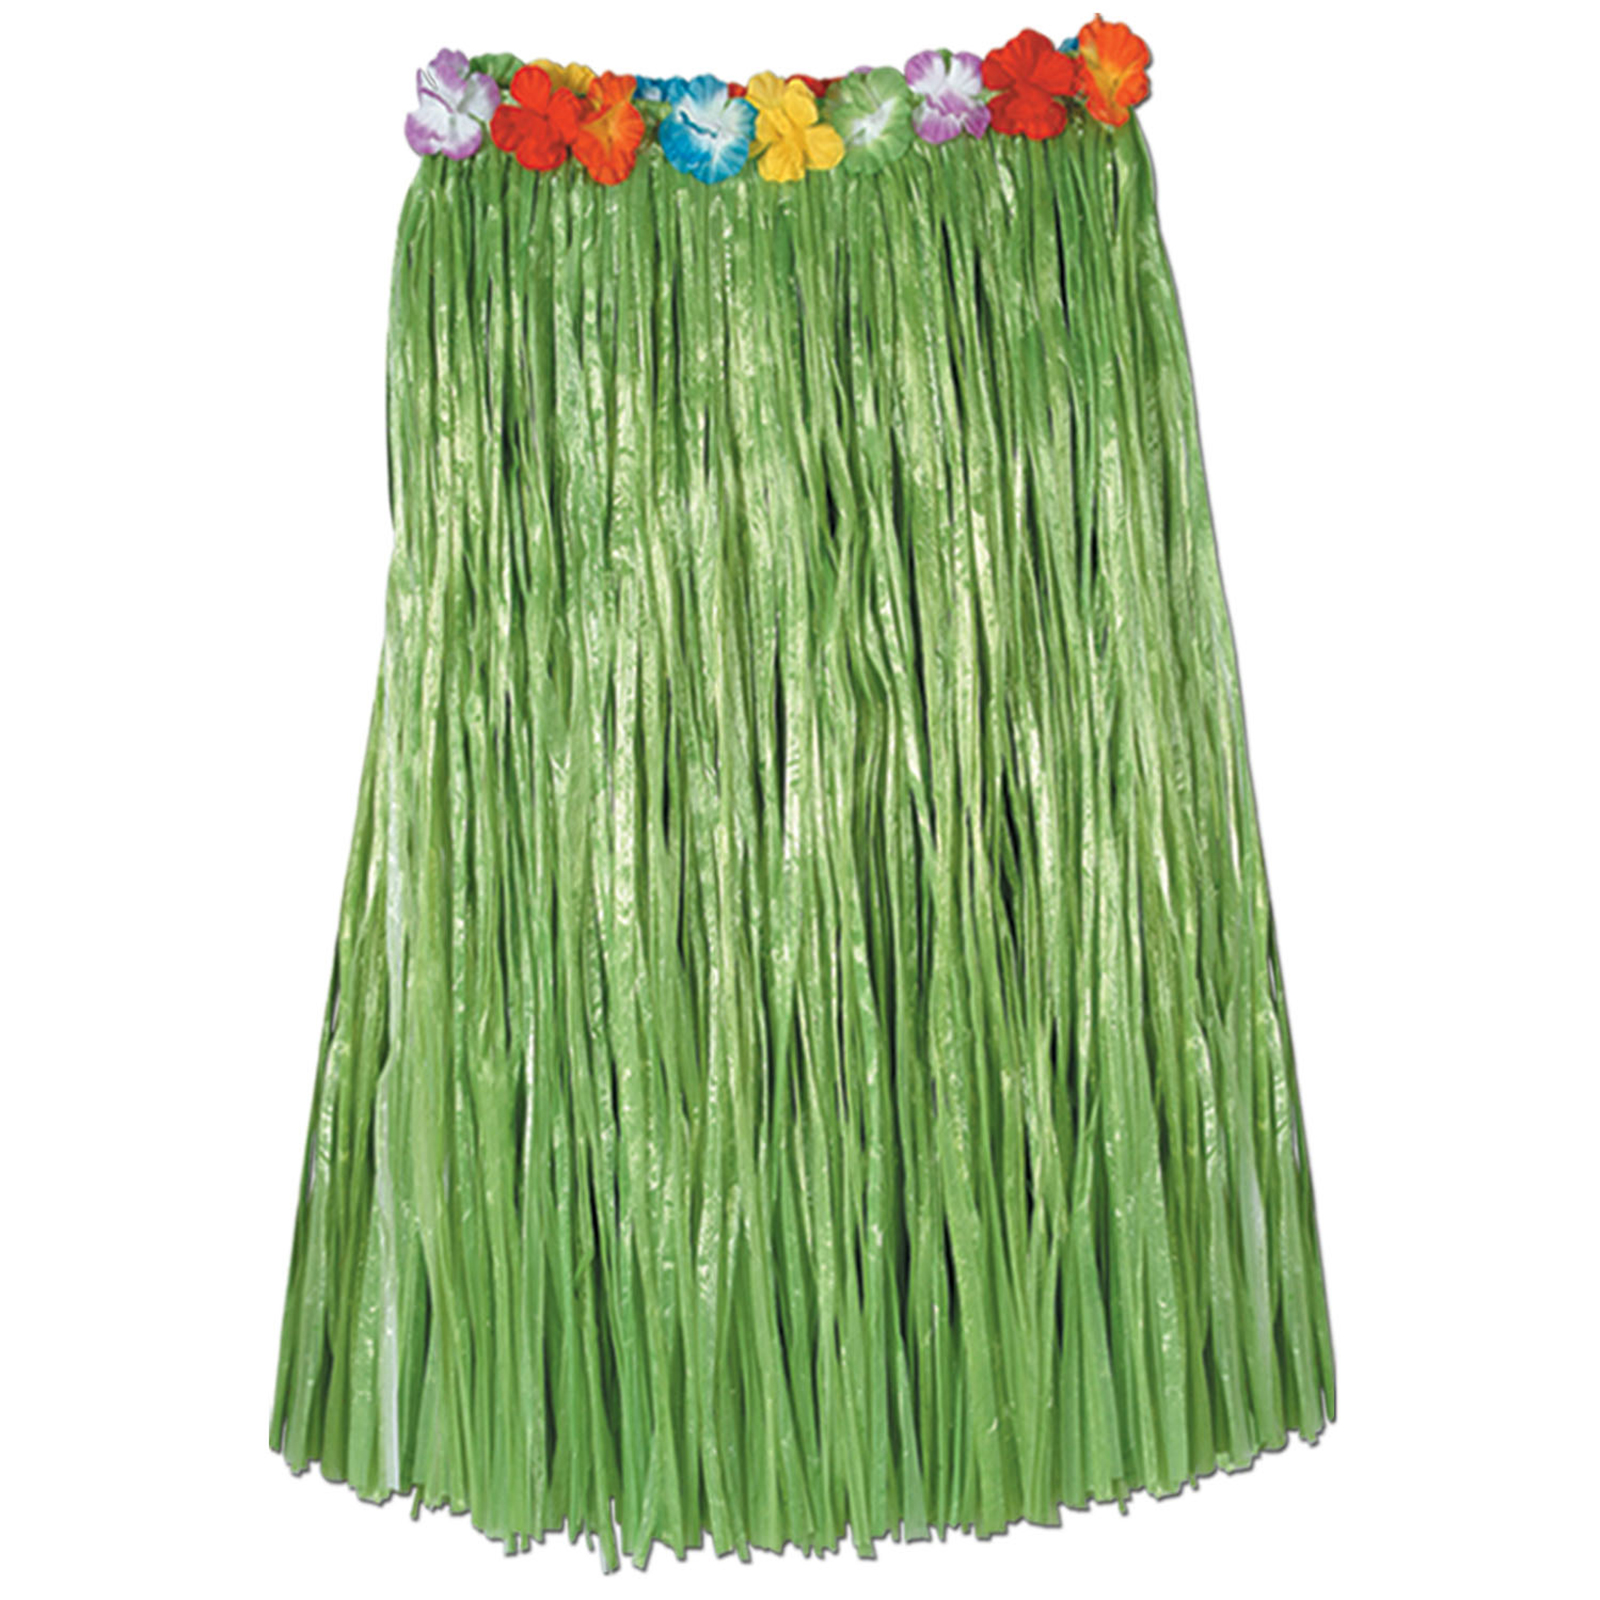 Green Adult Hula Skirt with Flowers